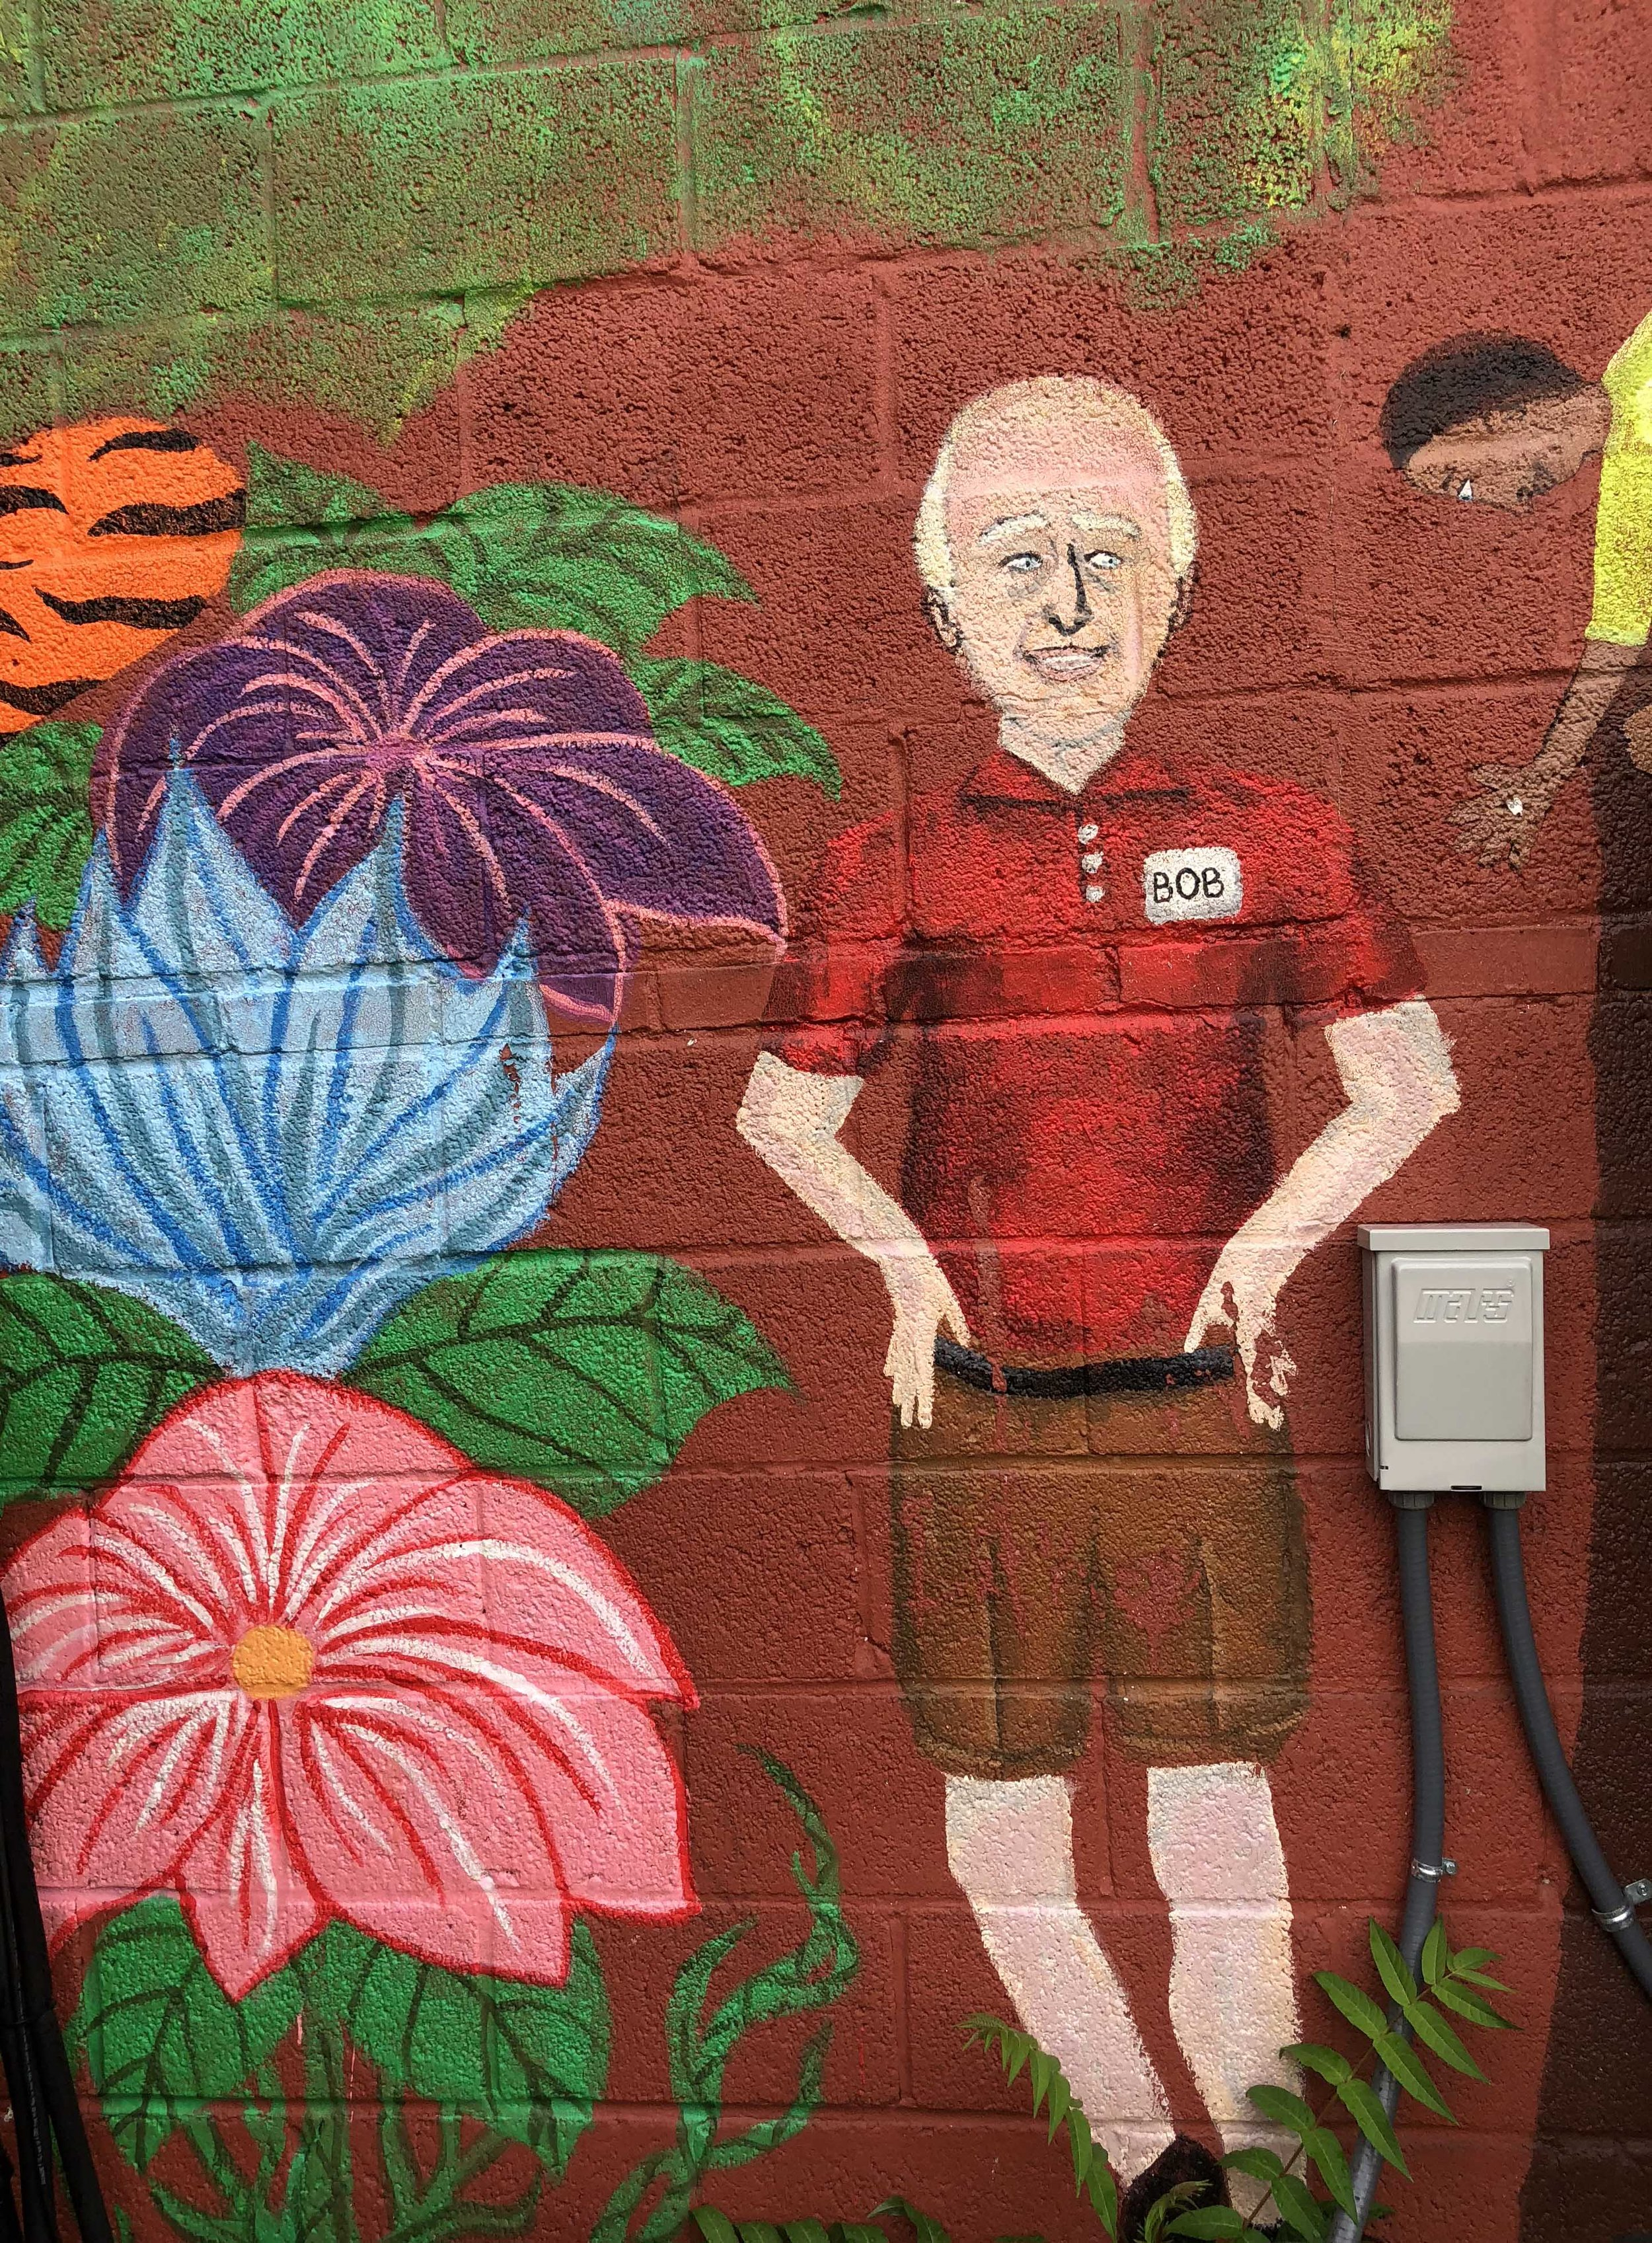 detail of Mural showing site manager Bob Stowers.